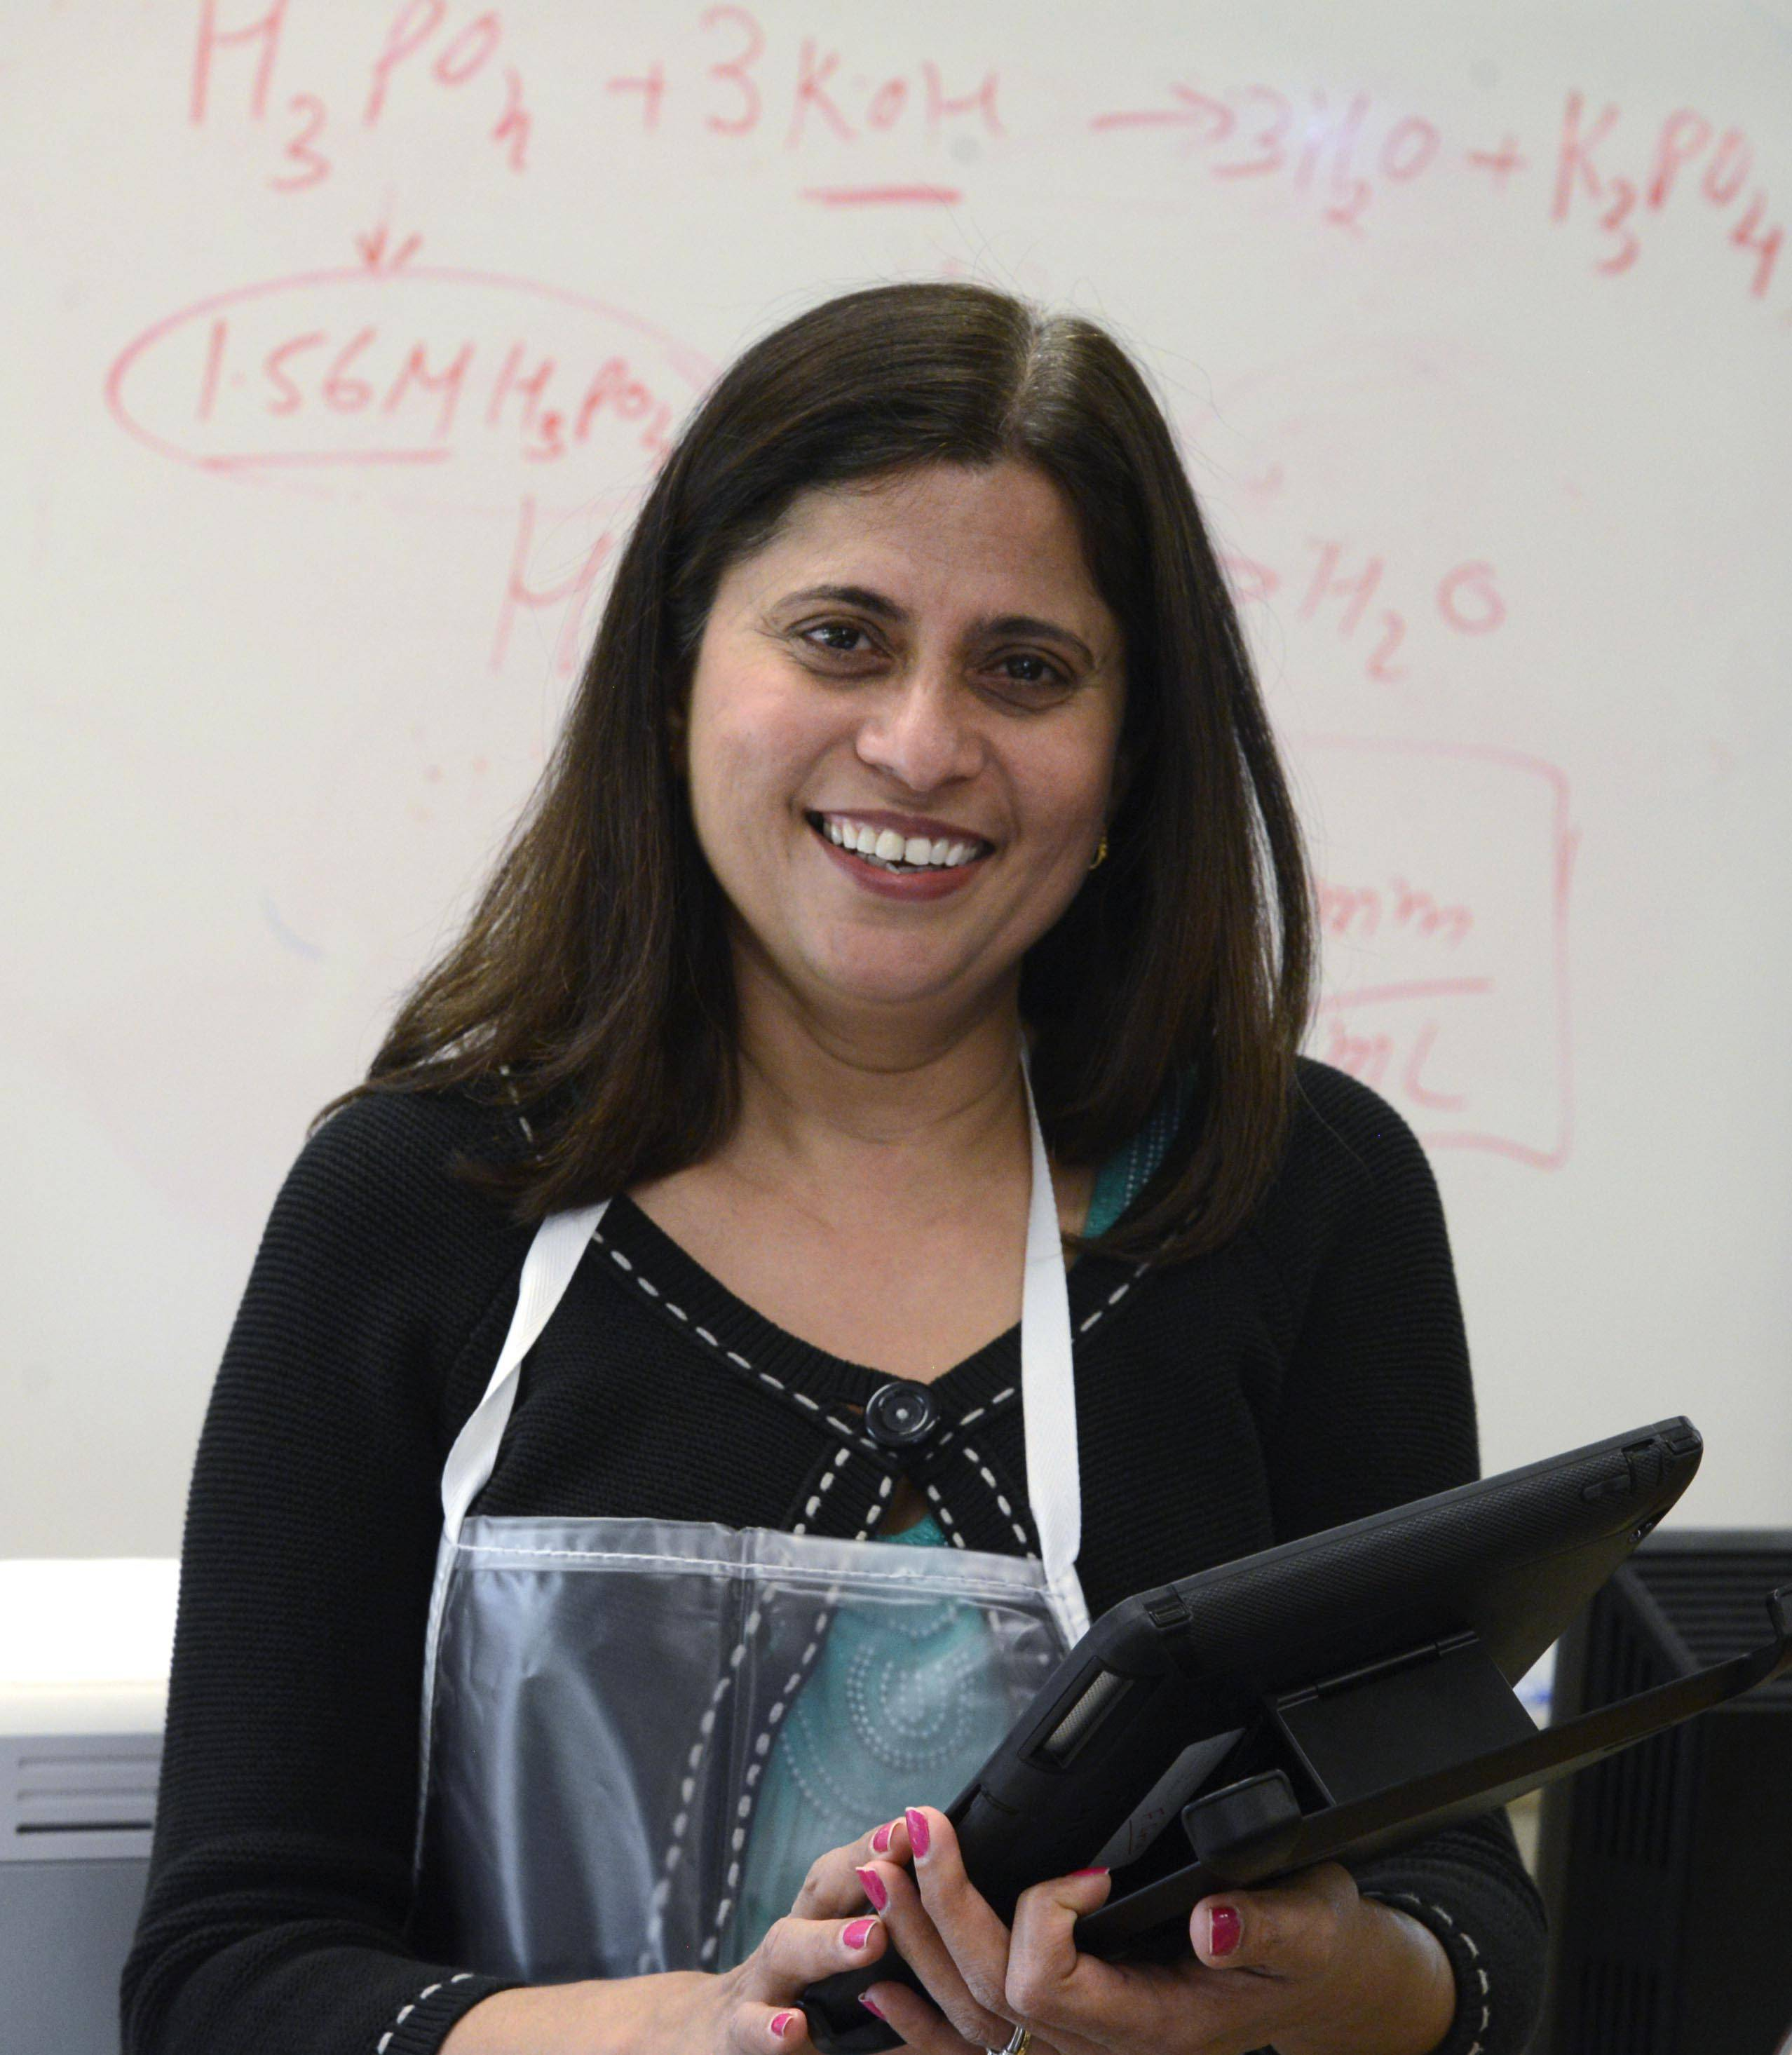 Falguni Soni is a chemistry and robotics teacher at Rosary High School in Aurora. She takes special pride in the performance of her students in science and engineering competitions.